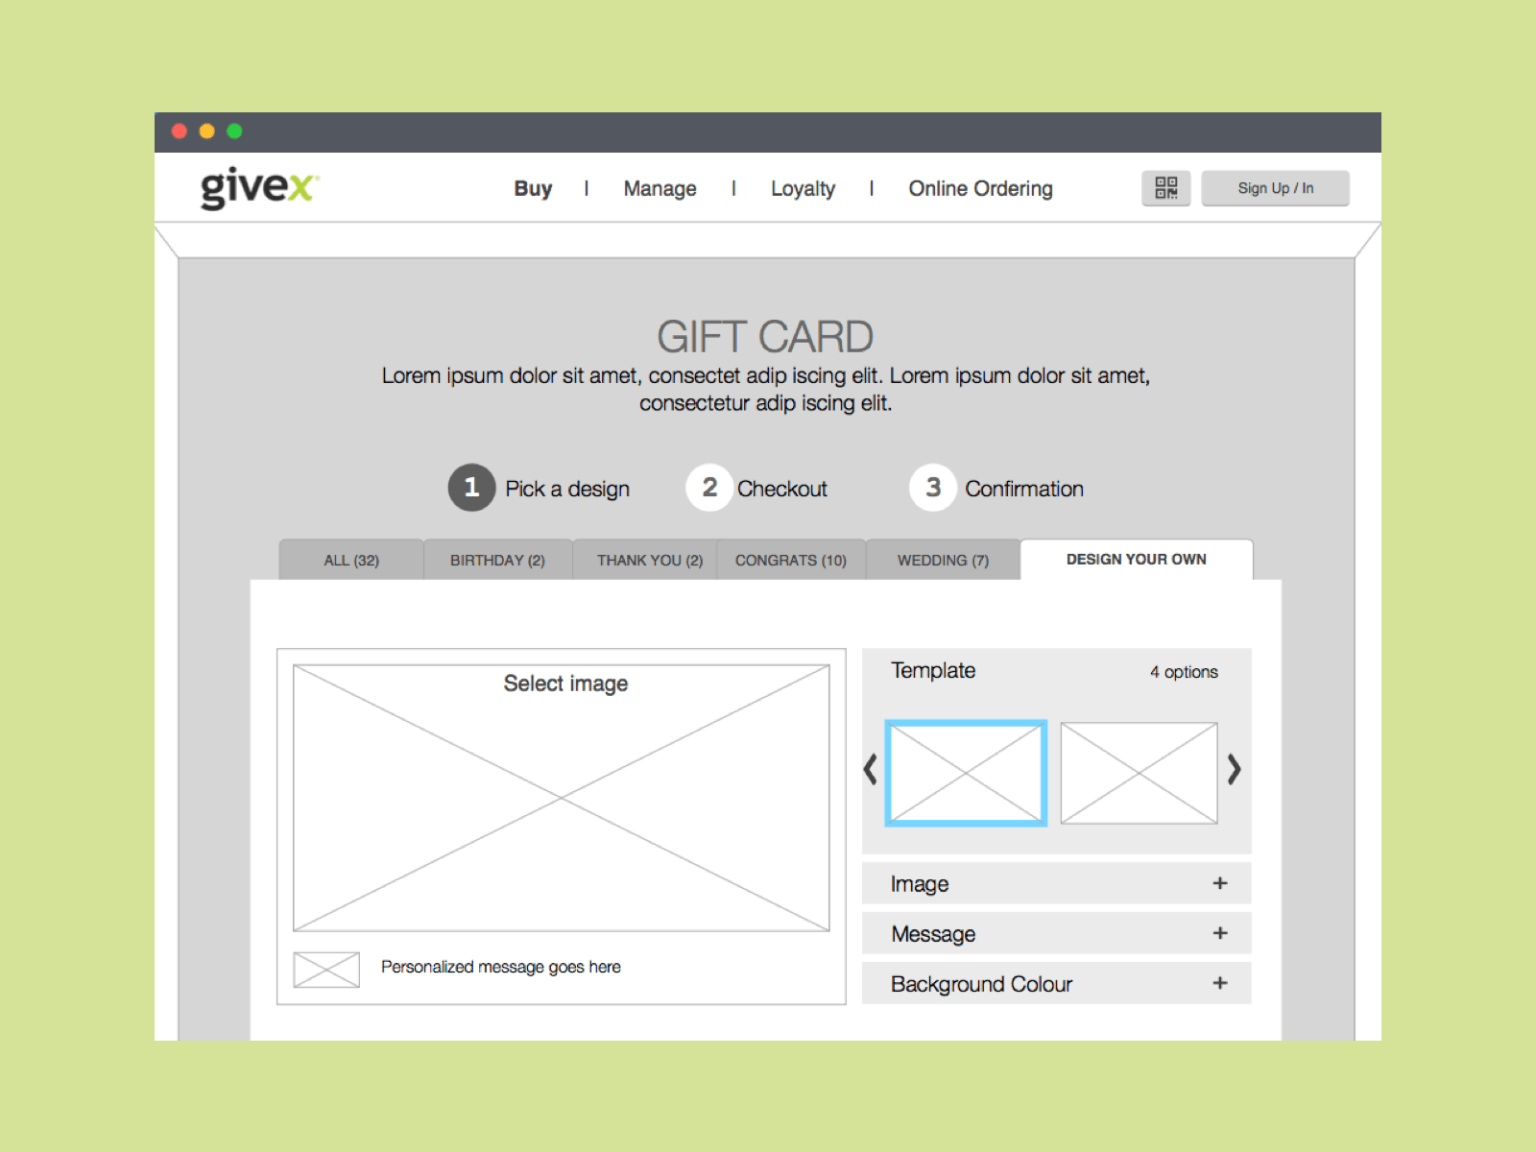 Givex Gift Card Customizable Experience